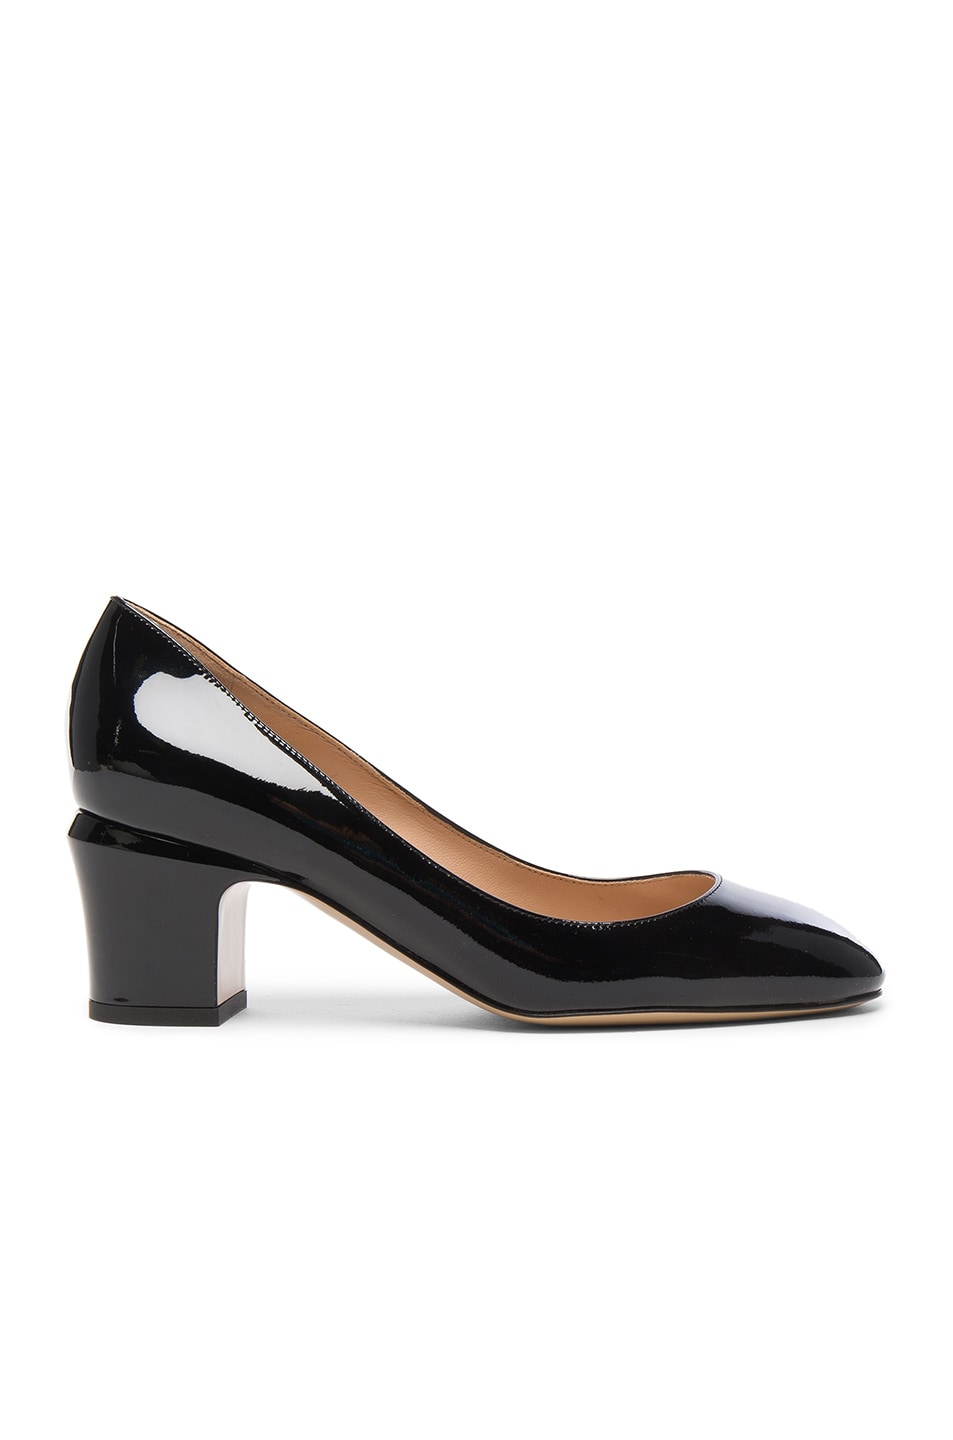 Image 1 of Valentino Tan-Go Patent Leather Pump in Black